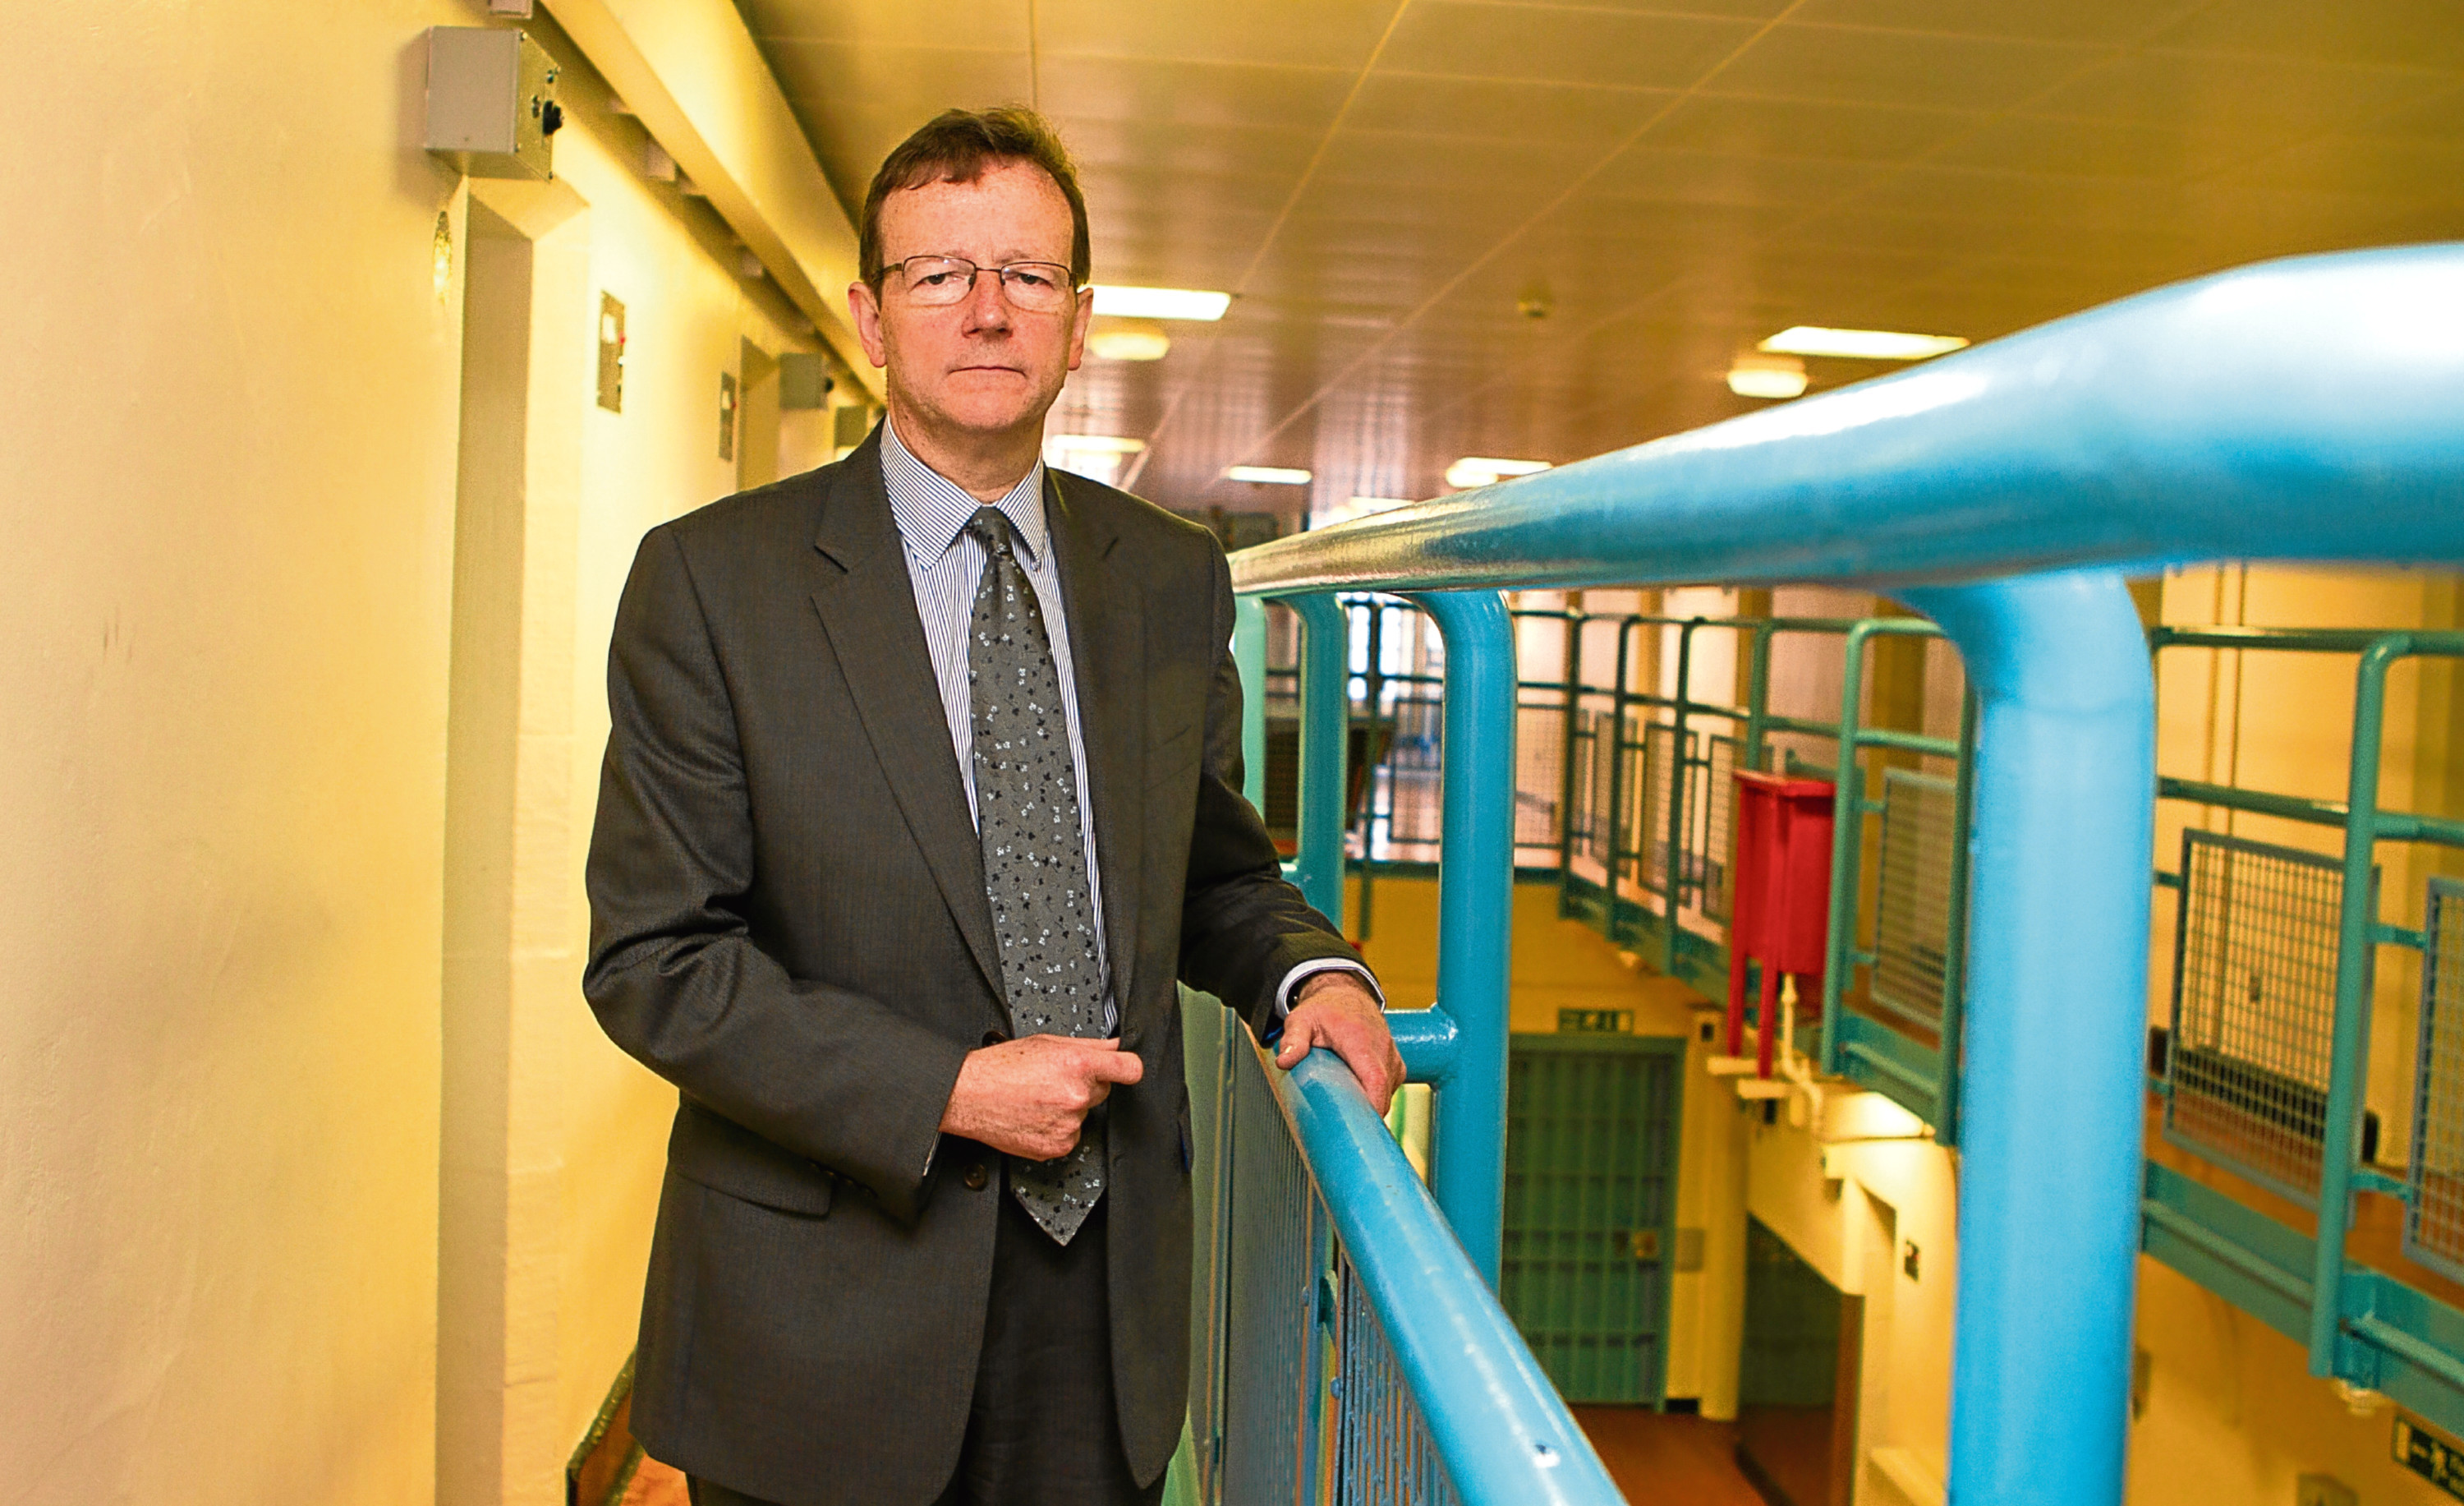 11/06/15 Sunday Post   HMP Perth  David Strang is HM Chief Inspector of Prisons for Scotland.